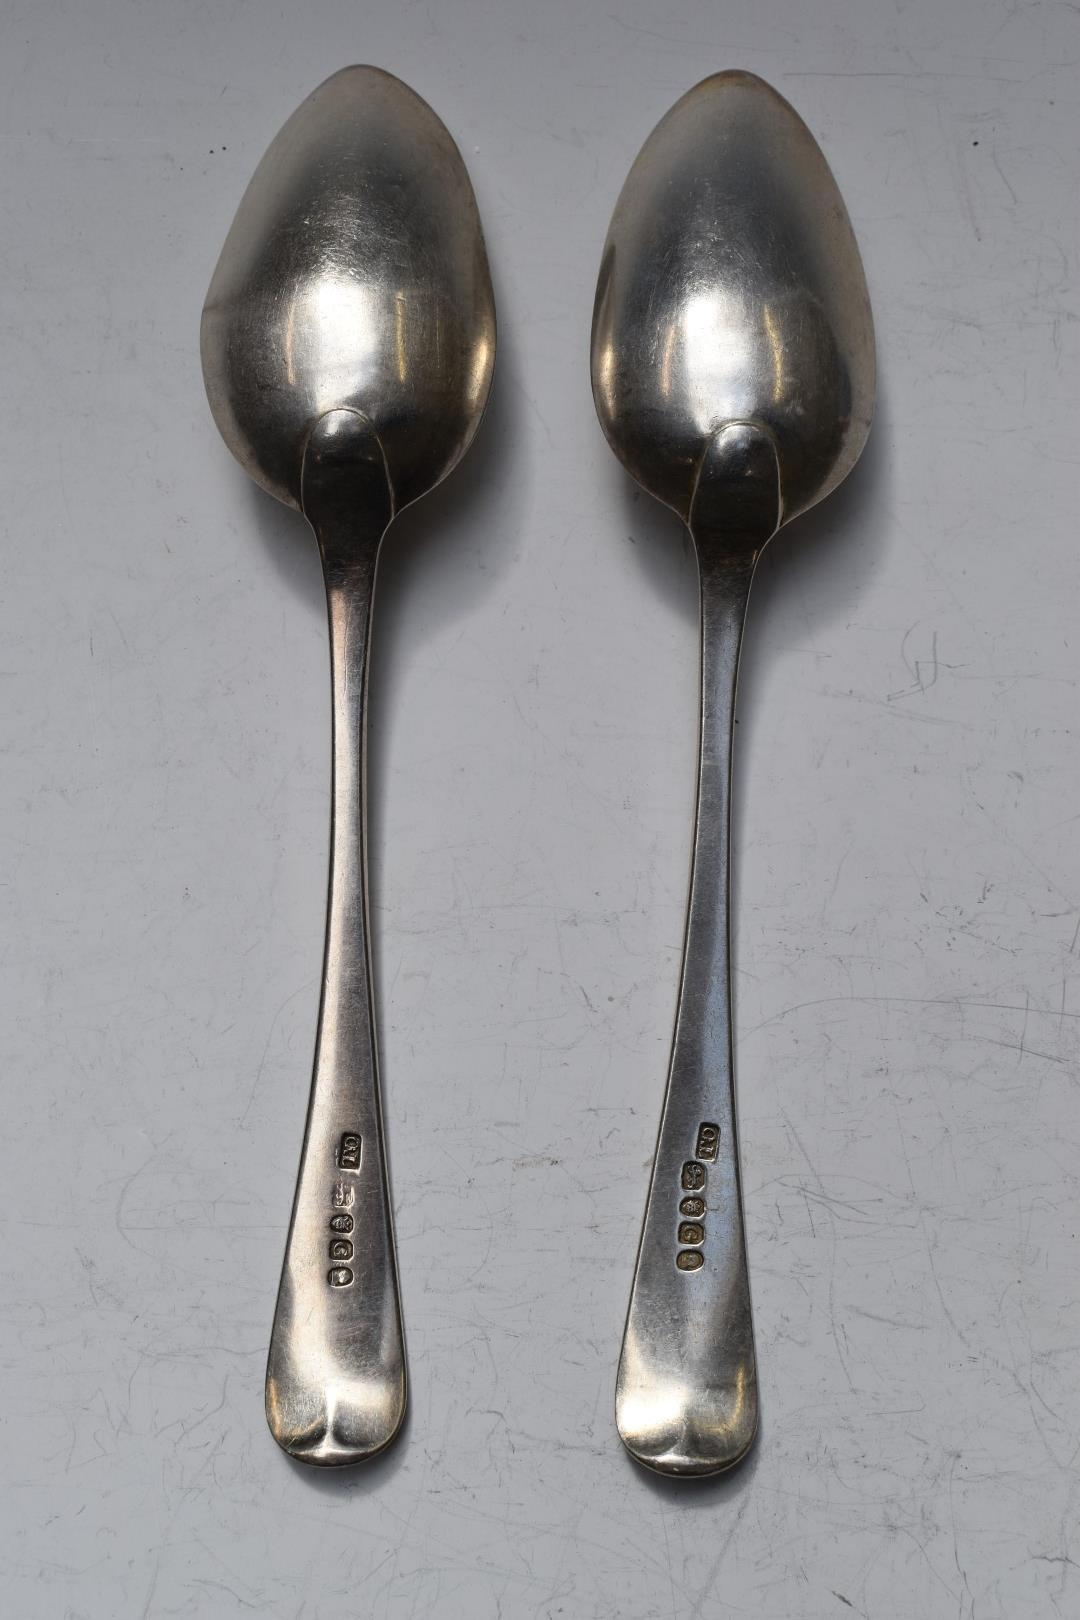 Pair of George III hallmarked silver Old English pattern table spoons, London 1702, maker Thomas - Image 2 of 3